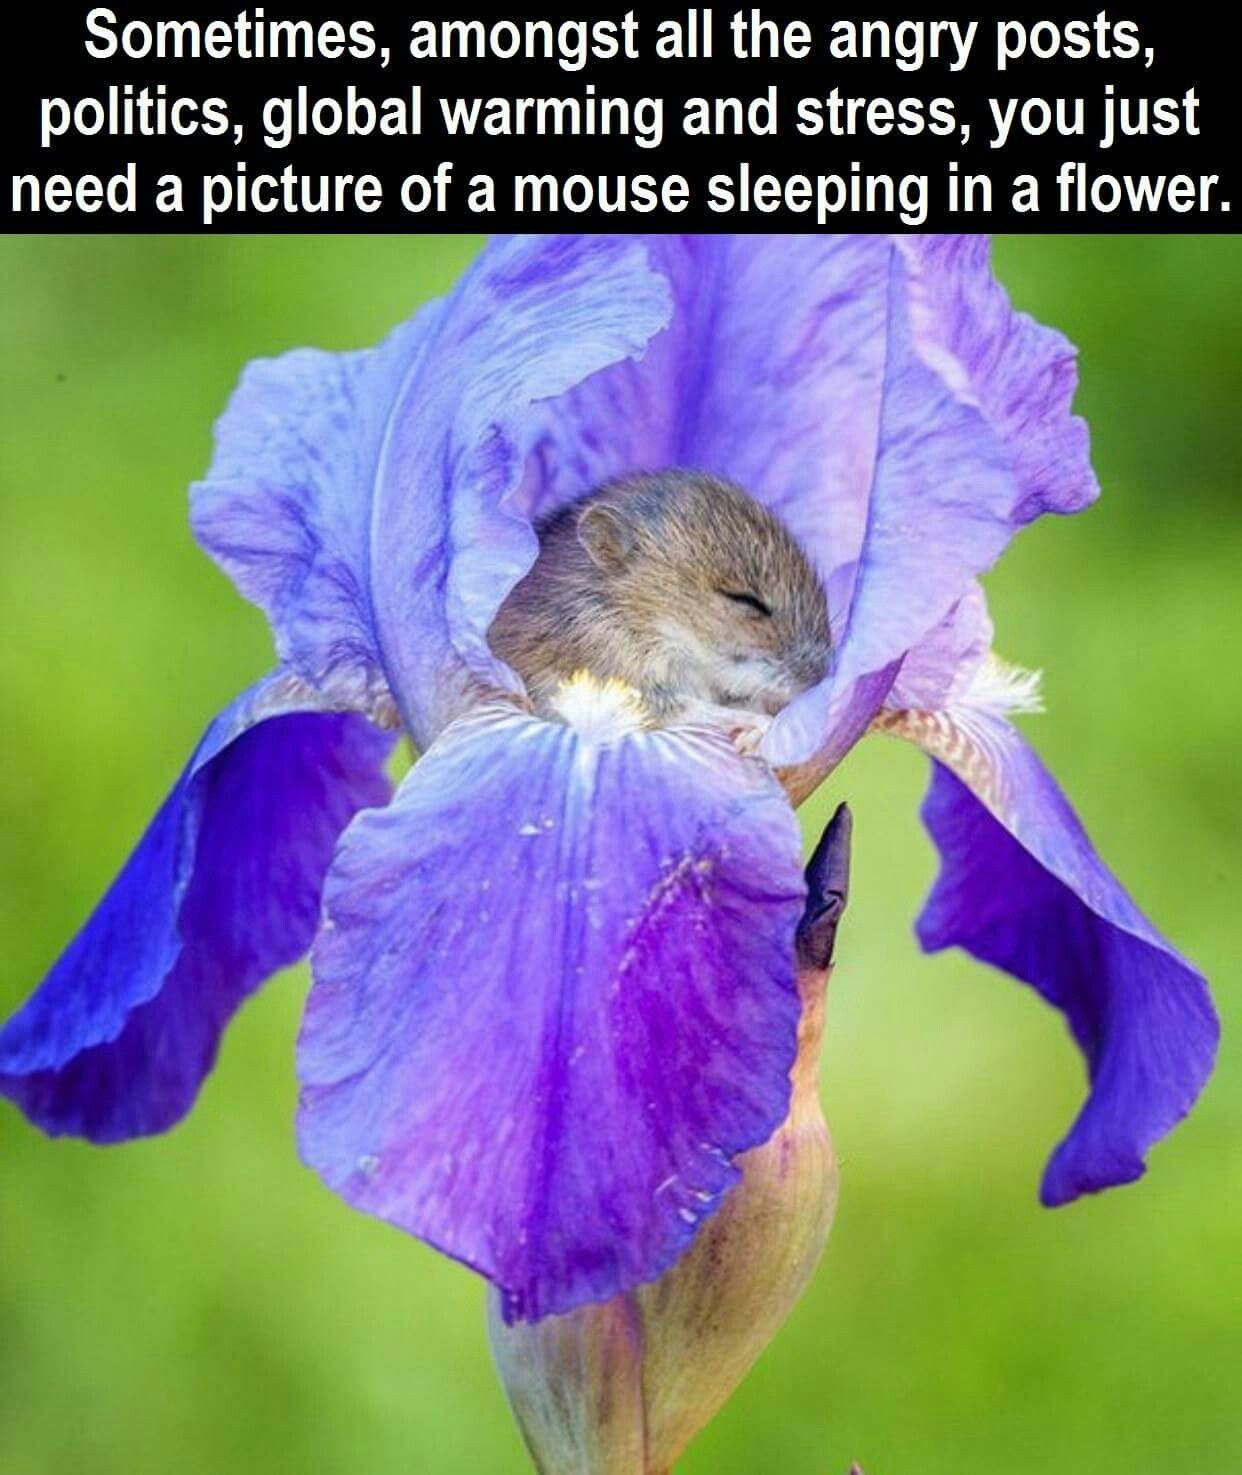 Sometimes you just need a mouse sleeping in a flower